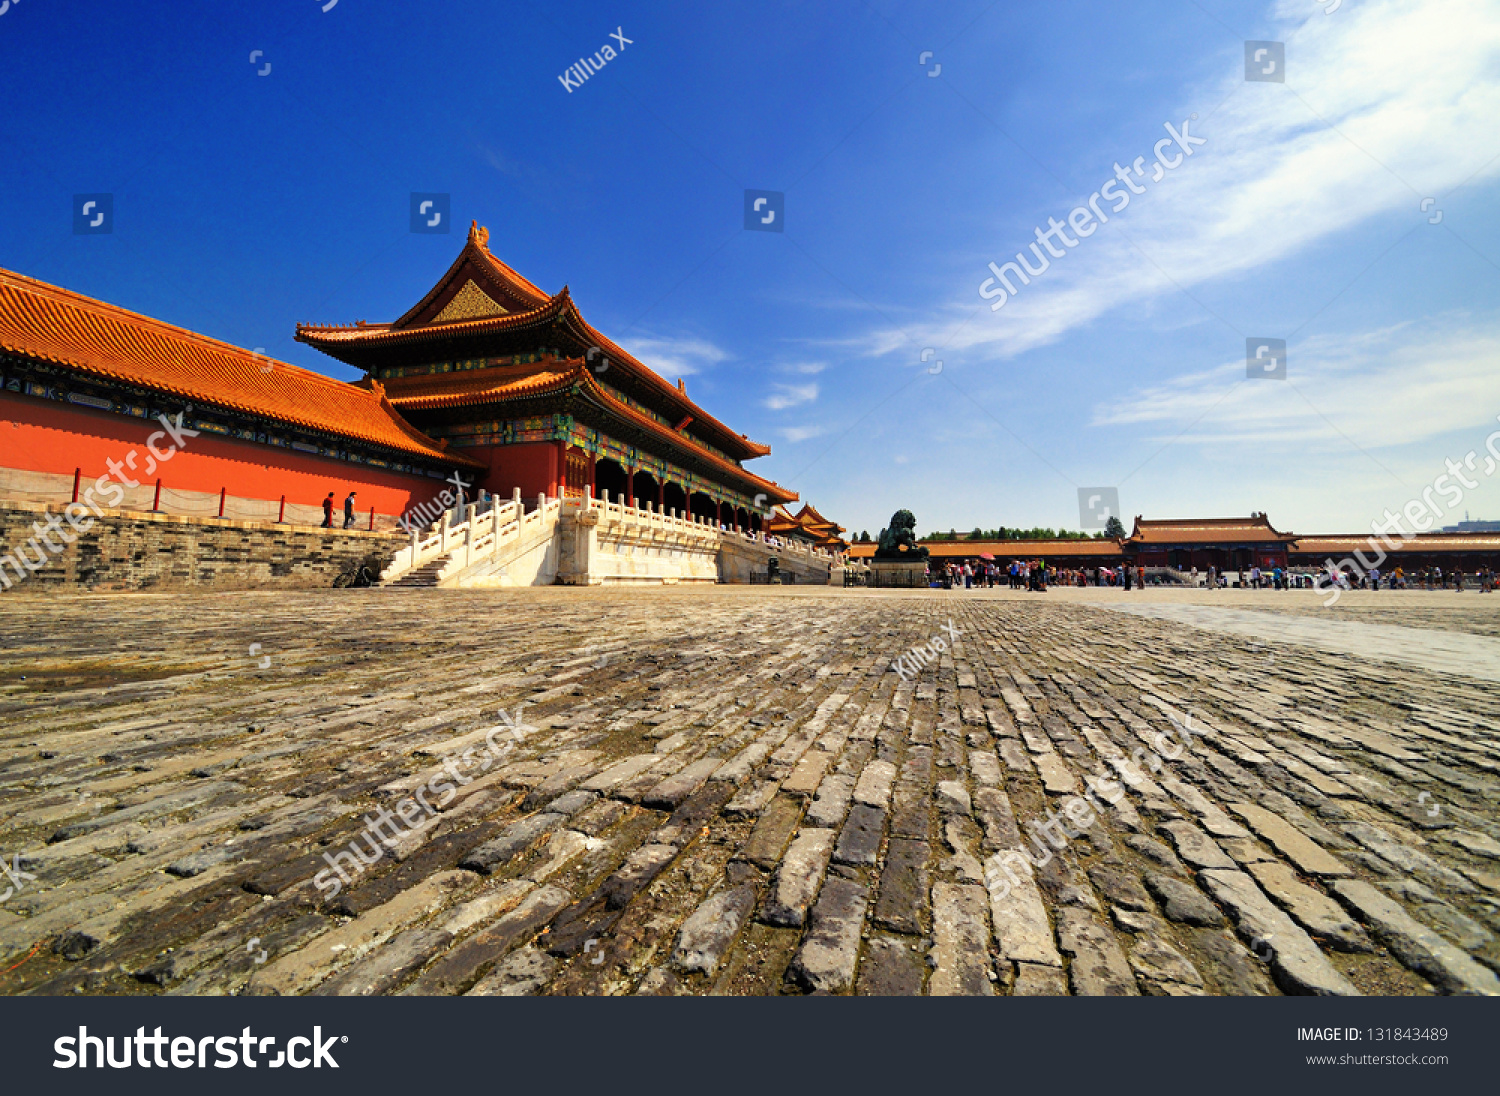 landscape architecture the forbidden city of china Kids learn about the forbidden city of ancient china a giant palace built for the emperor in beijing city by the ming dynasty.